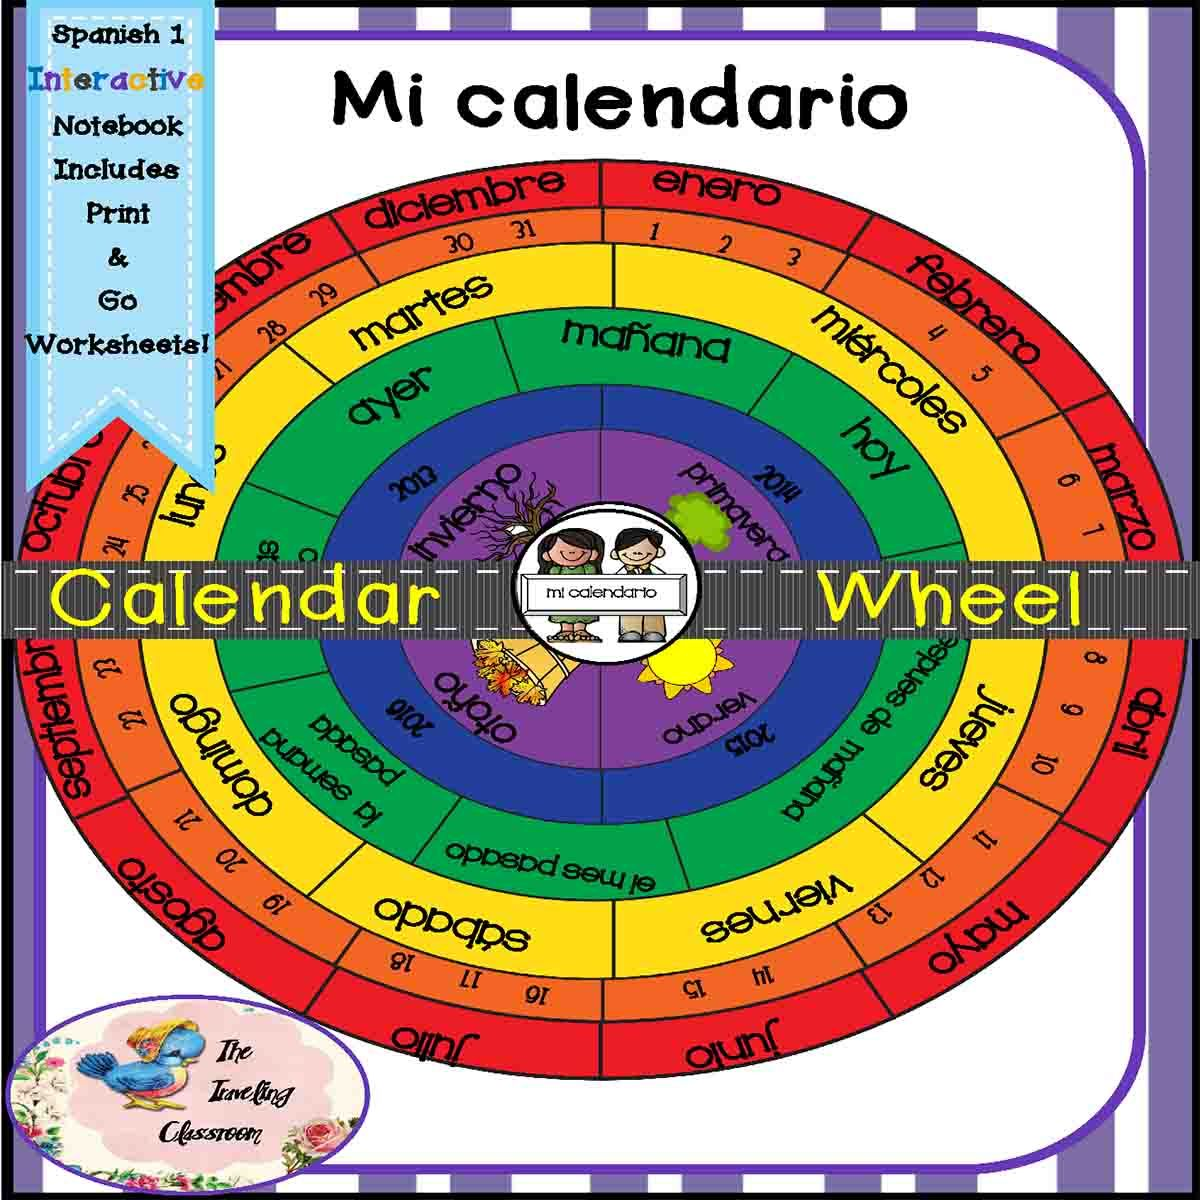 This interactive notebook set includes:  Mi calendario y la fecha- My Calendar Wheel and Date- months, seasons, years, days - all on a calendar wheel! Mix & match wheels to suit your needs. Includes full size pictures, anchor chart, quizzes, print & go worksheets, instructions, flippables, foldables, games, and extra credit challenges.$